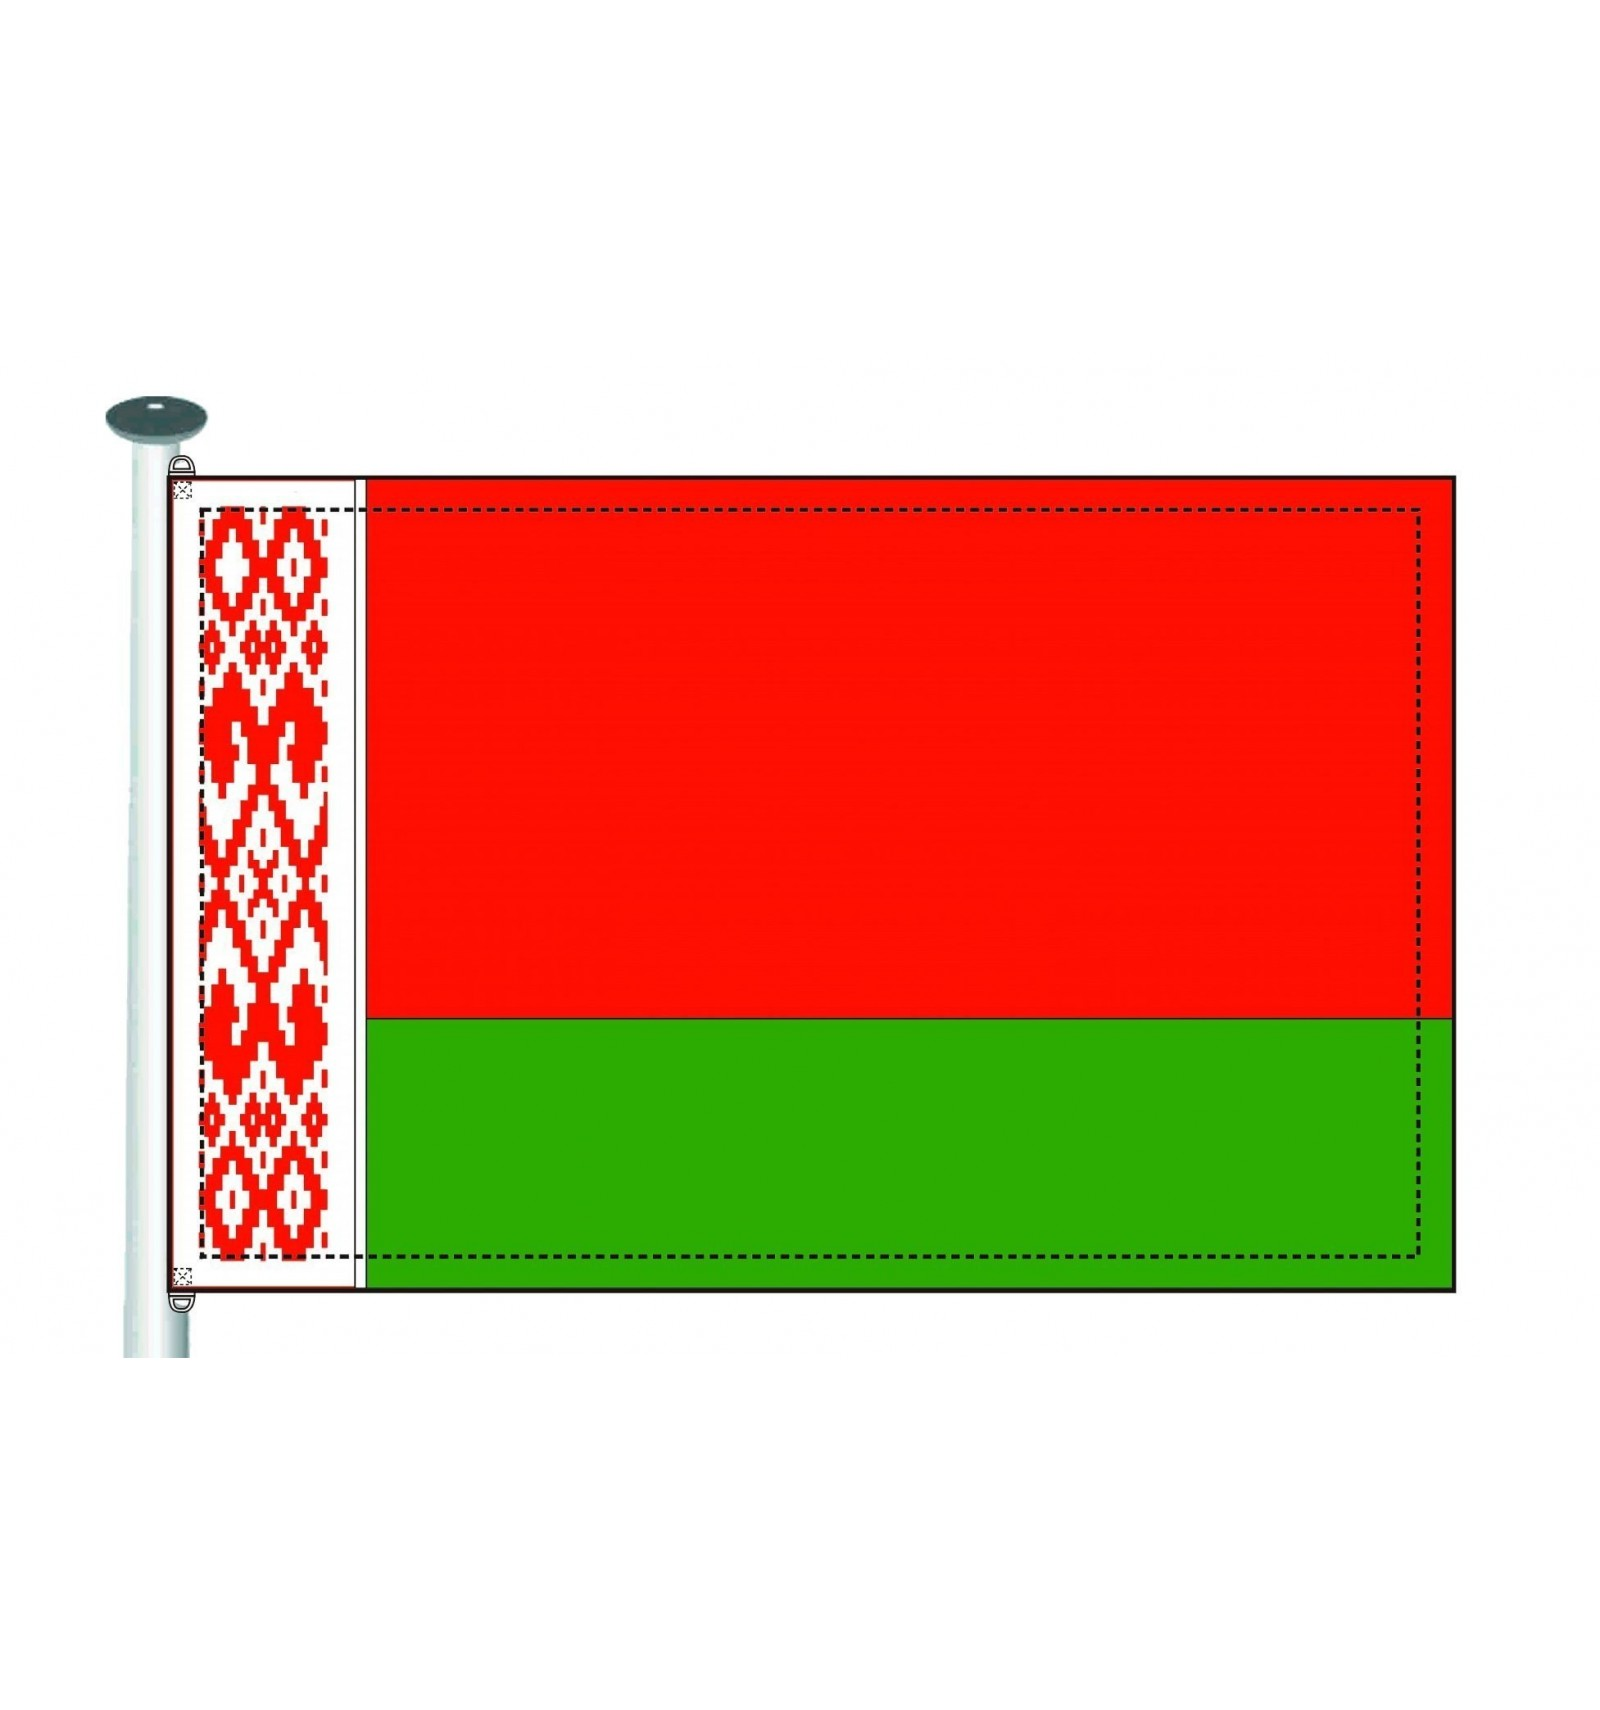 Bandera Bielorrusia 10 X 15 Cm. Living Room Wall Tiles Pictures. Living Room Picture Wall. Nice Cheap Living Room Furniture. Art Van Living Room Furniture. Living Room Theater Fau Boca Raton Florida. Latest Design Living Room 2018. Funky Small Living Room Ideas. Coastal Living Rooms And Kitchens